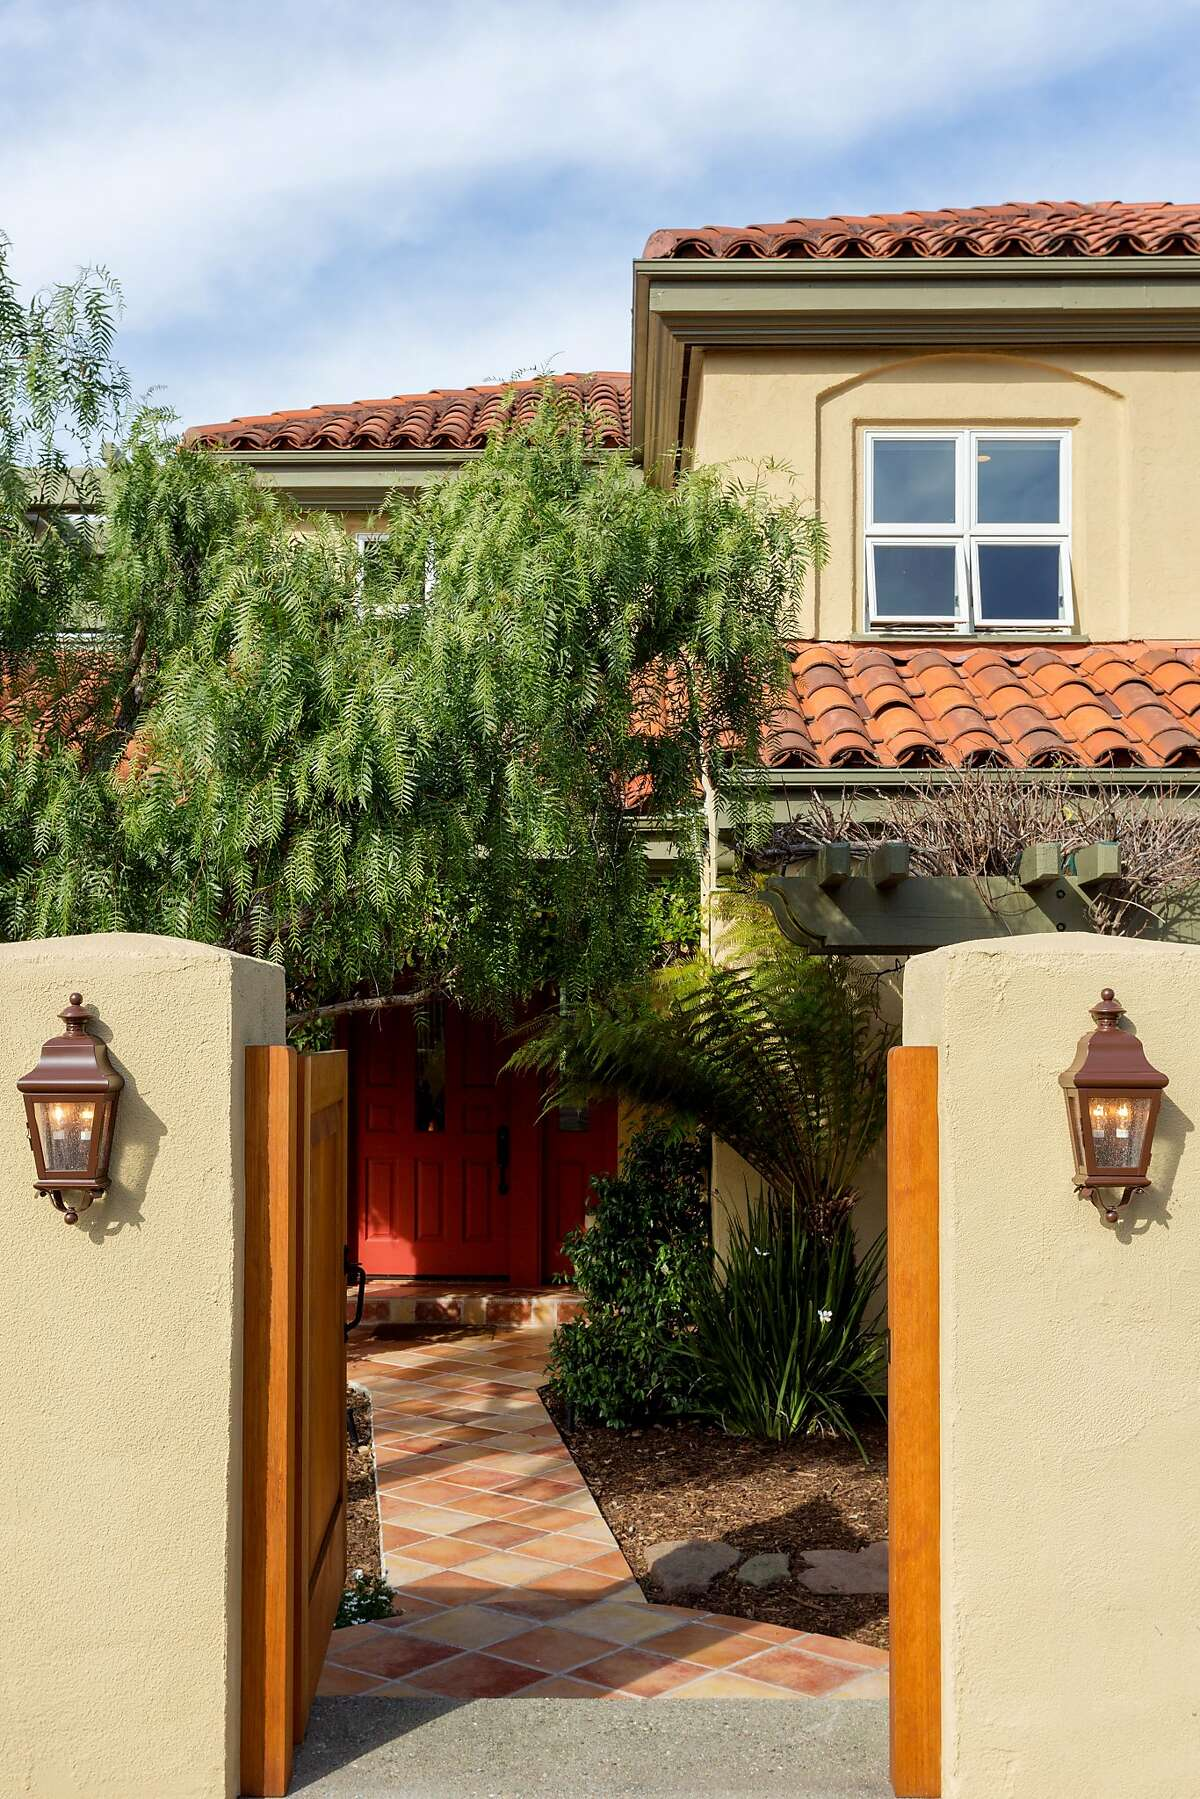 A handmade entry gate introduces the Upper Rockridge property.